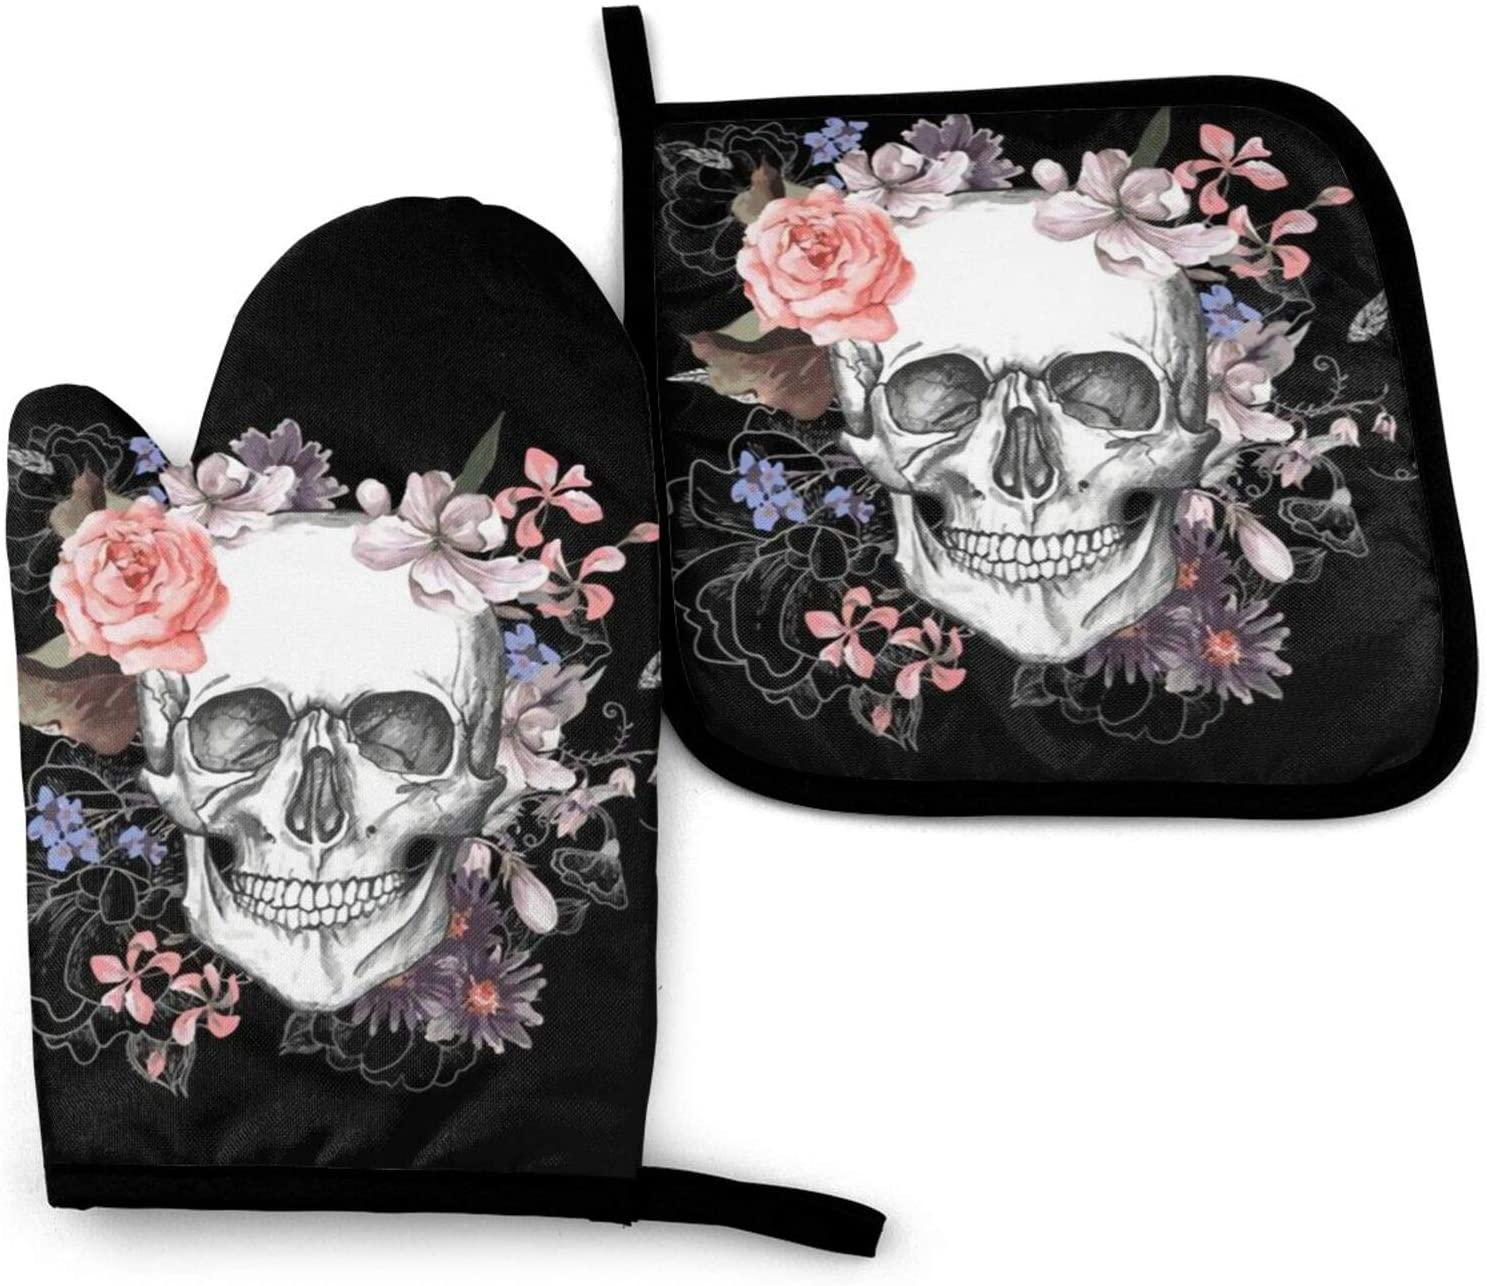 QEKOZU Pink Floral Sugar Skull Flower Oven Mitts and Pot Holders for Kitchen Counter Safe Mats, Non-Slip Textured Grip and Heat Resistant Gloves Perfect for Cooking Baking BBQ Grilling (2-Piece Set)